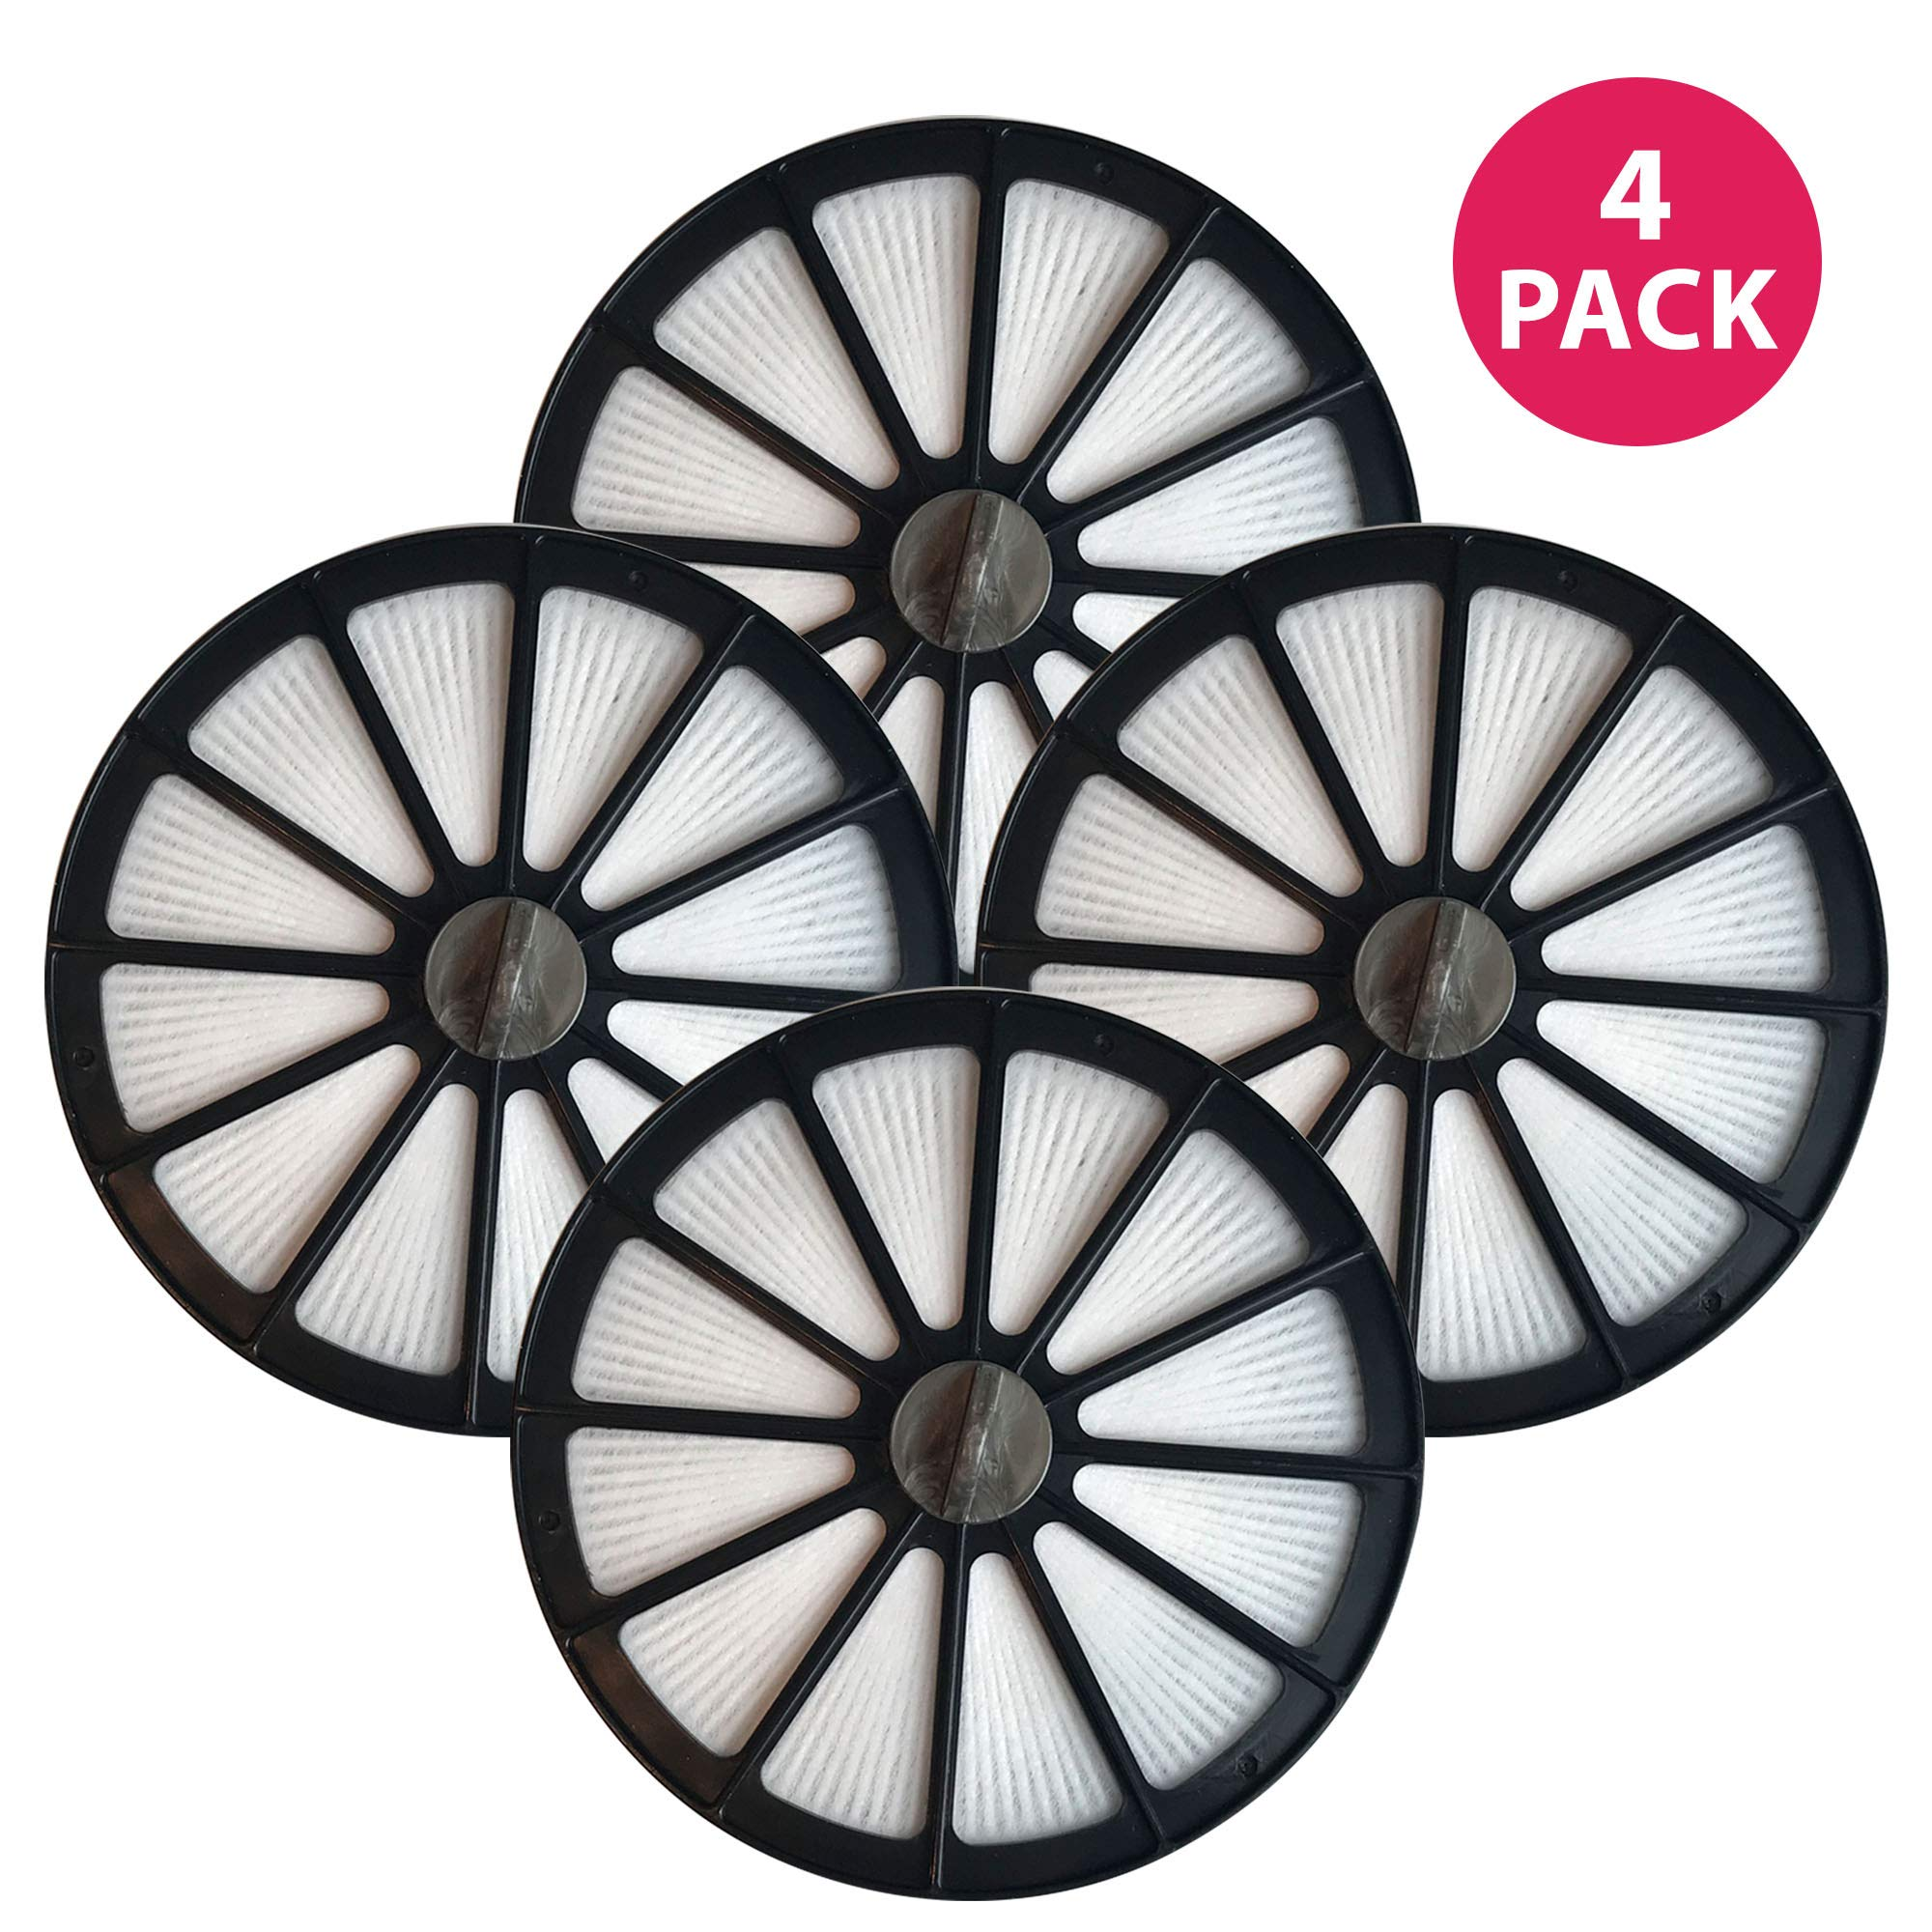 Crucial Vacuum Air Filter Replacement - Compatible with Bissell Part # 48G7, 2031473 203-1473 and Bissell Style 18 HEPA Style Filter Fits Healthy Home 16N5 Bagless Uprights - Washable (4 Pack)